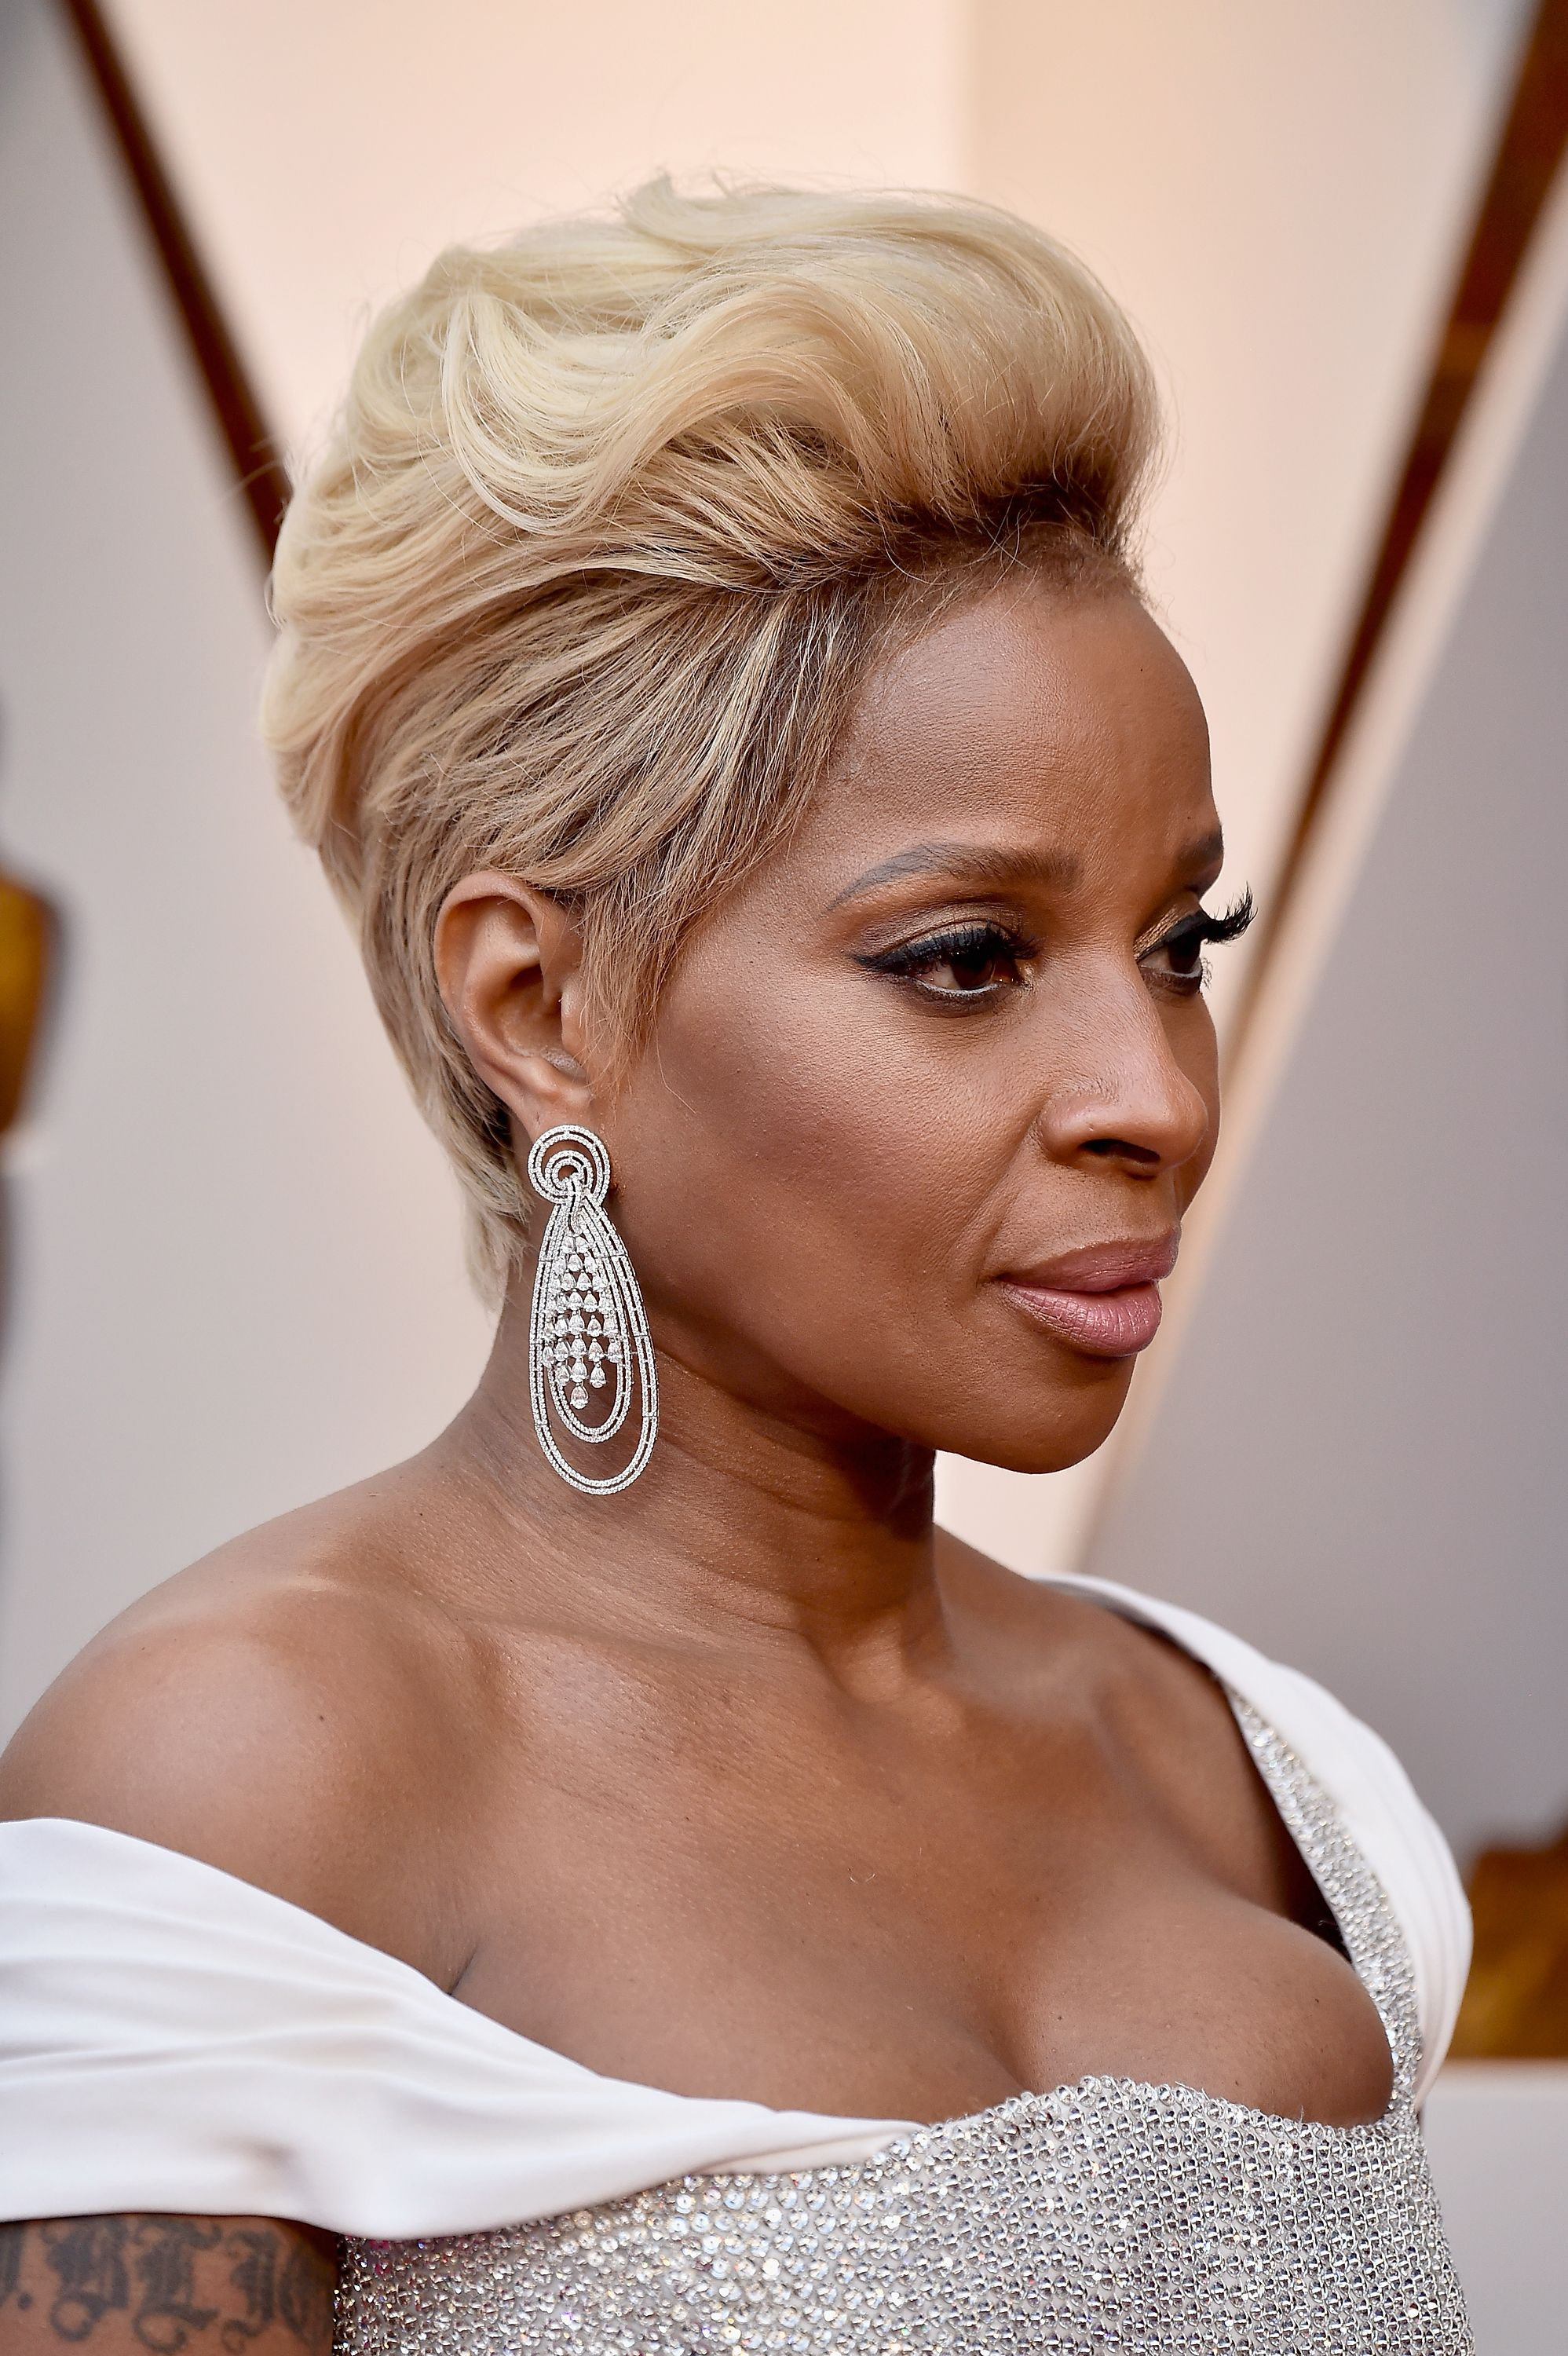 Mary J. Blige during the 90th Annual Academy Awards at Hollywood & Highland Center on March 4, 2018 in Hollywood, California. | Source: Getty Images